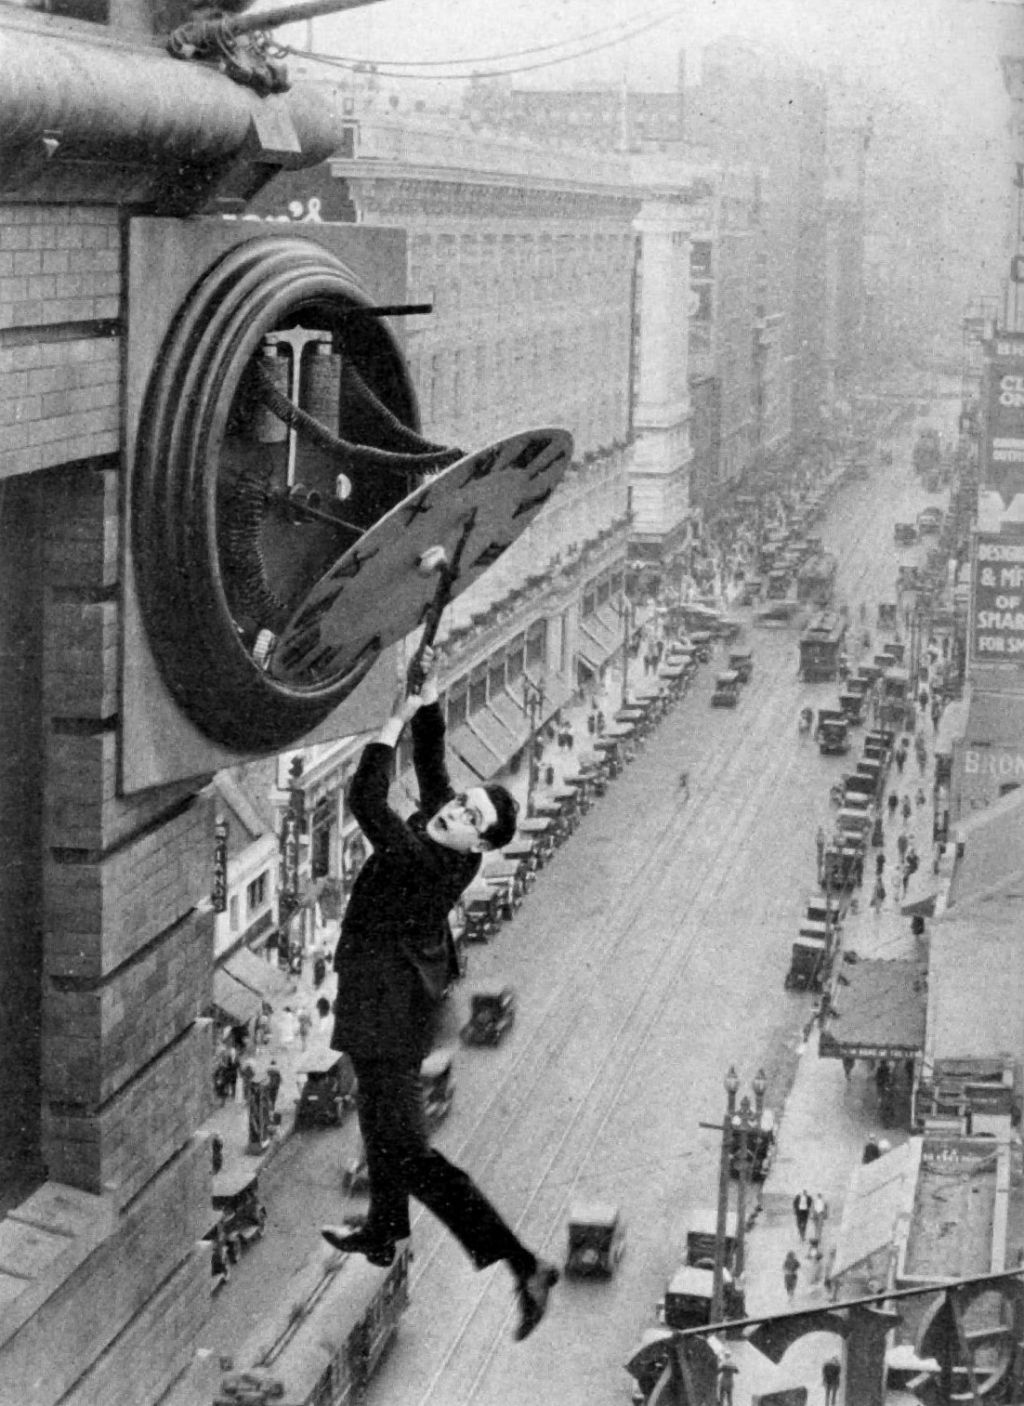 Harold Lloyd in Safety Last!, dir. Fred C. Newmeyer and Sam Taylor, 1923.